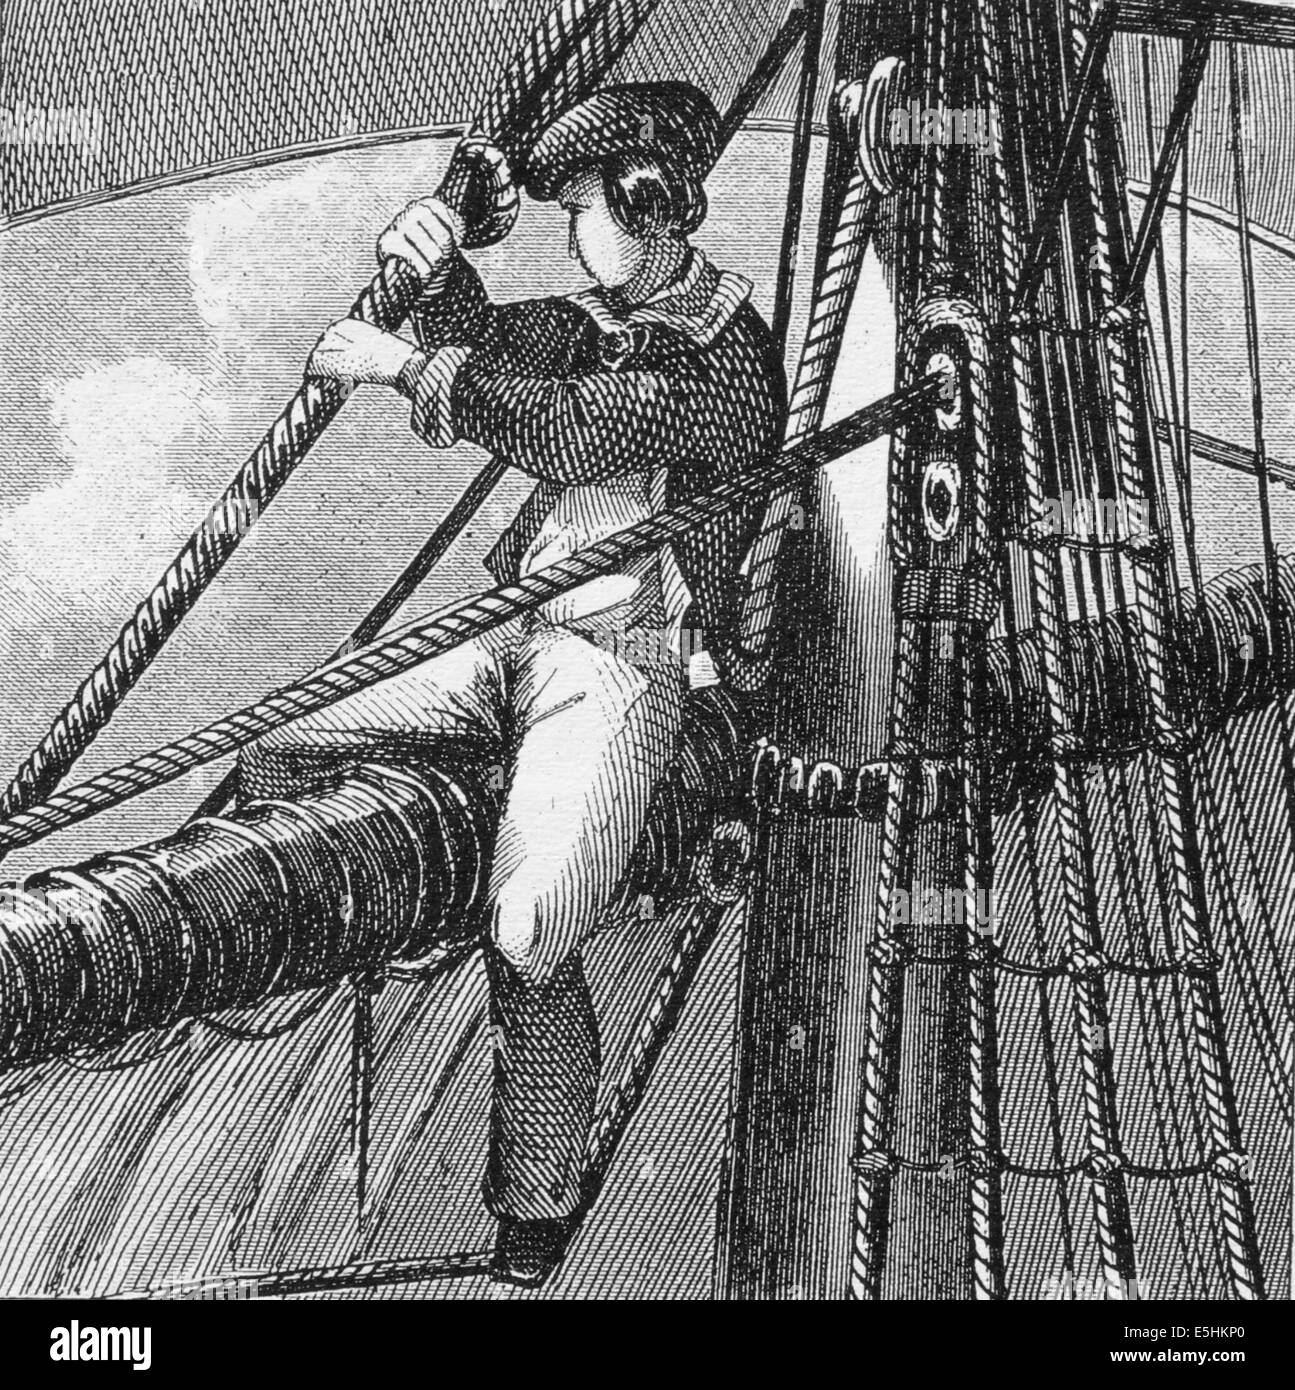 Look-out from the topsail yard. 19th century. Engraving. - Stock Image